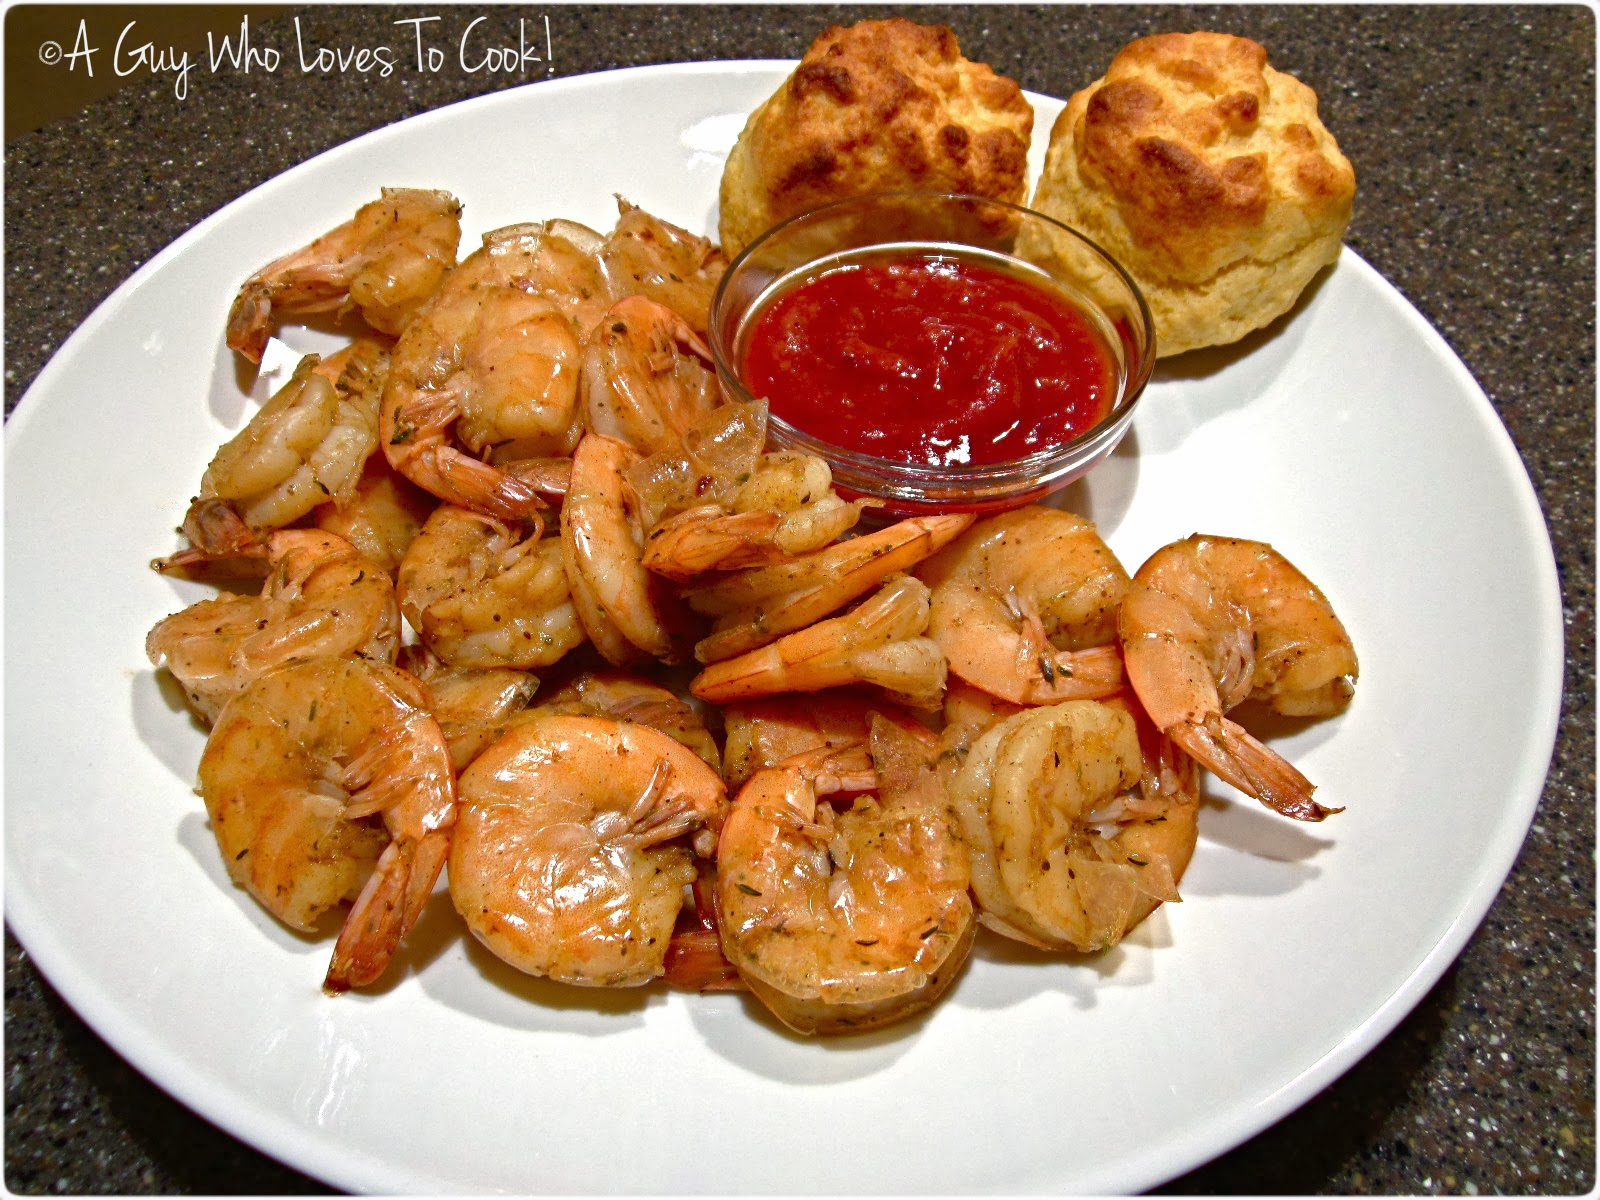 drunken chicken drunken monkey bread drunken shrimp drunken shrimp